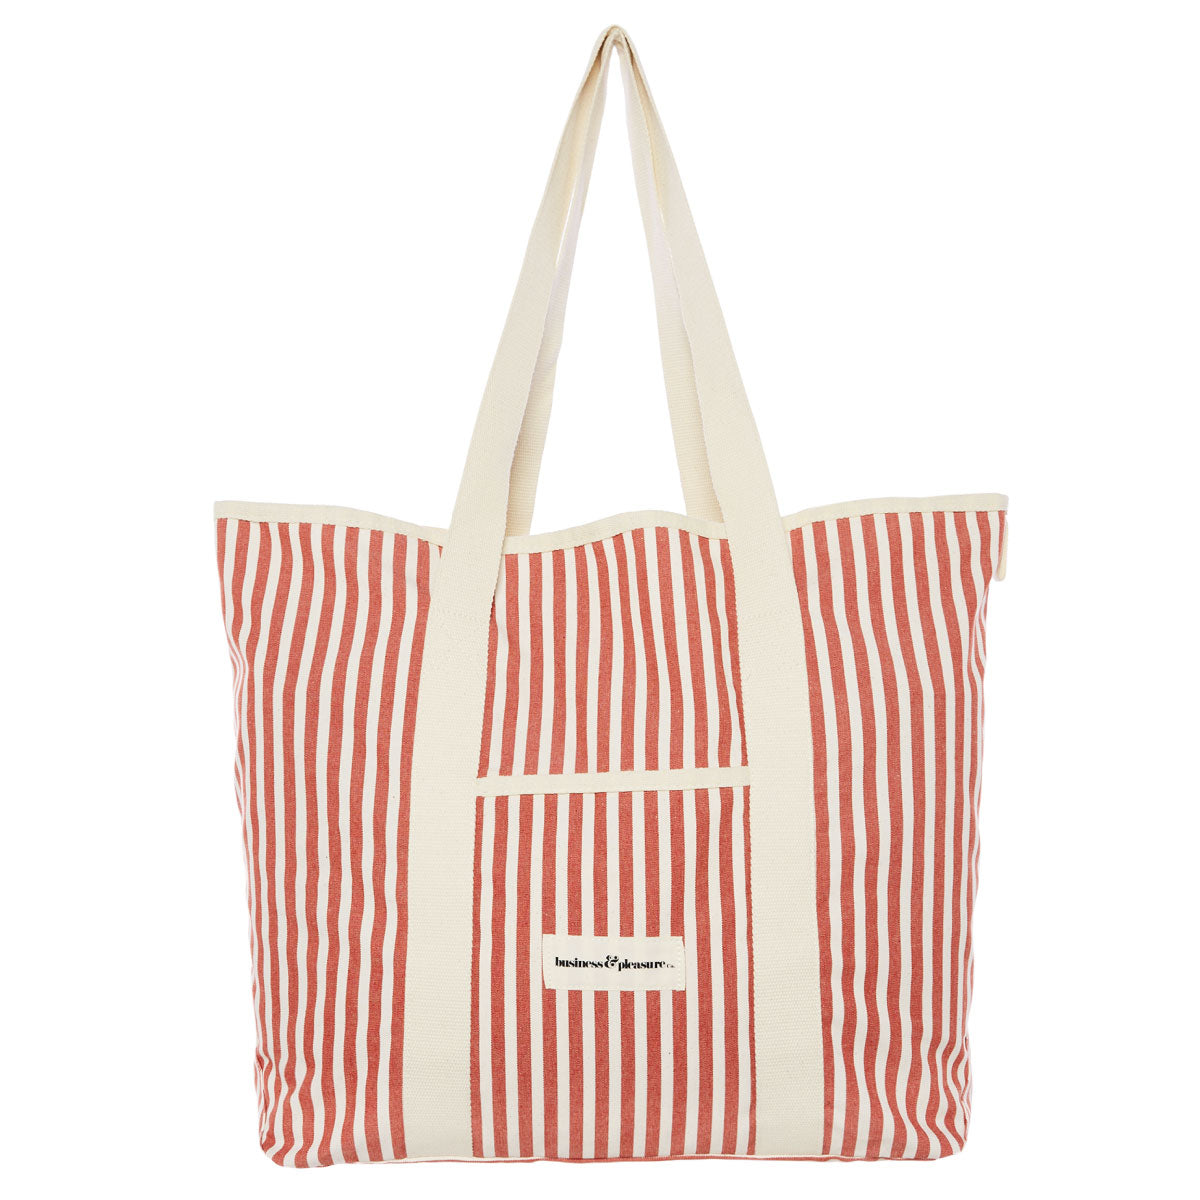 The Beach Bag - Lauren's Rust Stripe